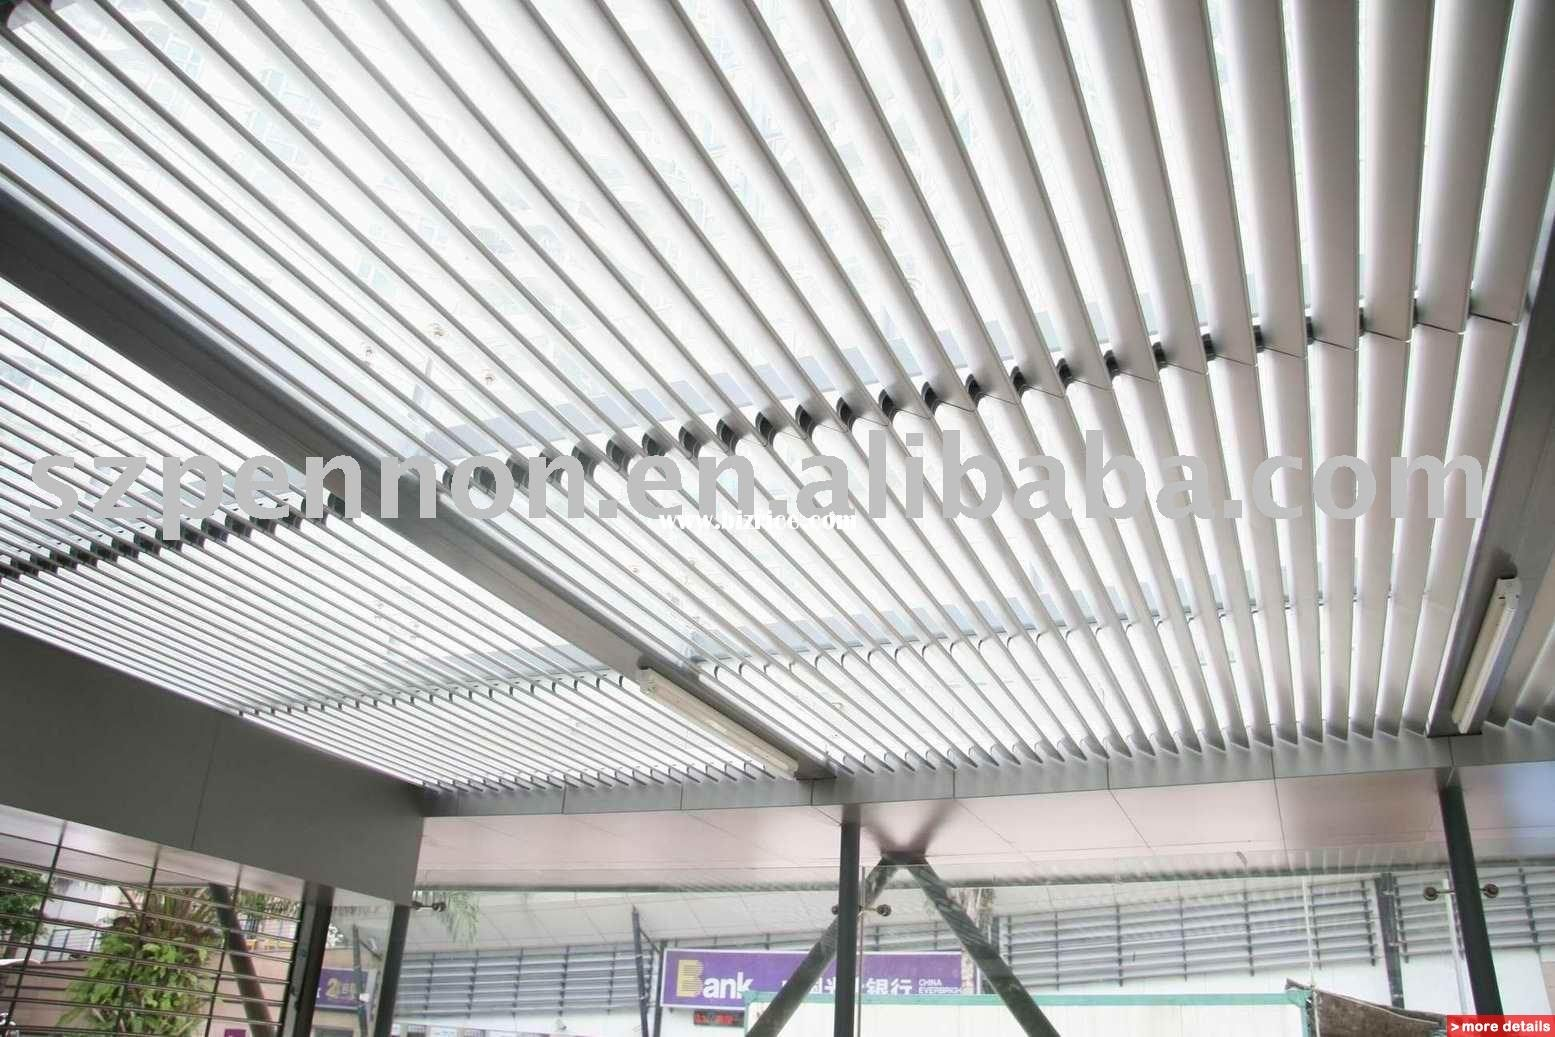 Delighted 12 Inch Floor Tiles Small 12X12 Ceramic Tiles Regular 12X24 Ceiling Tile 2 By 4 Ceiling Tiles Old 2X2 Ceramic Tile Coloured2X4 Tile Backsplash Ceiling Tiles | Metal Ceiling Tile(U Type Ceiling),ceiling Panel ..